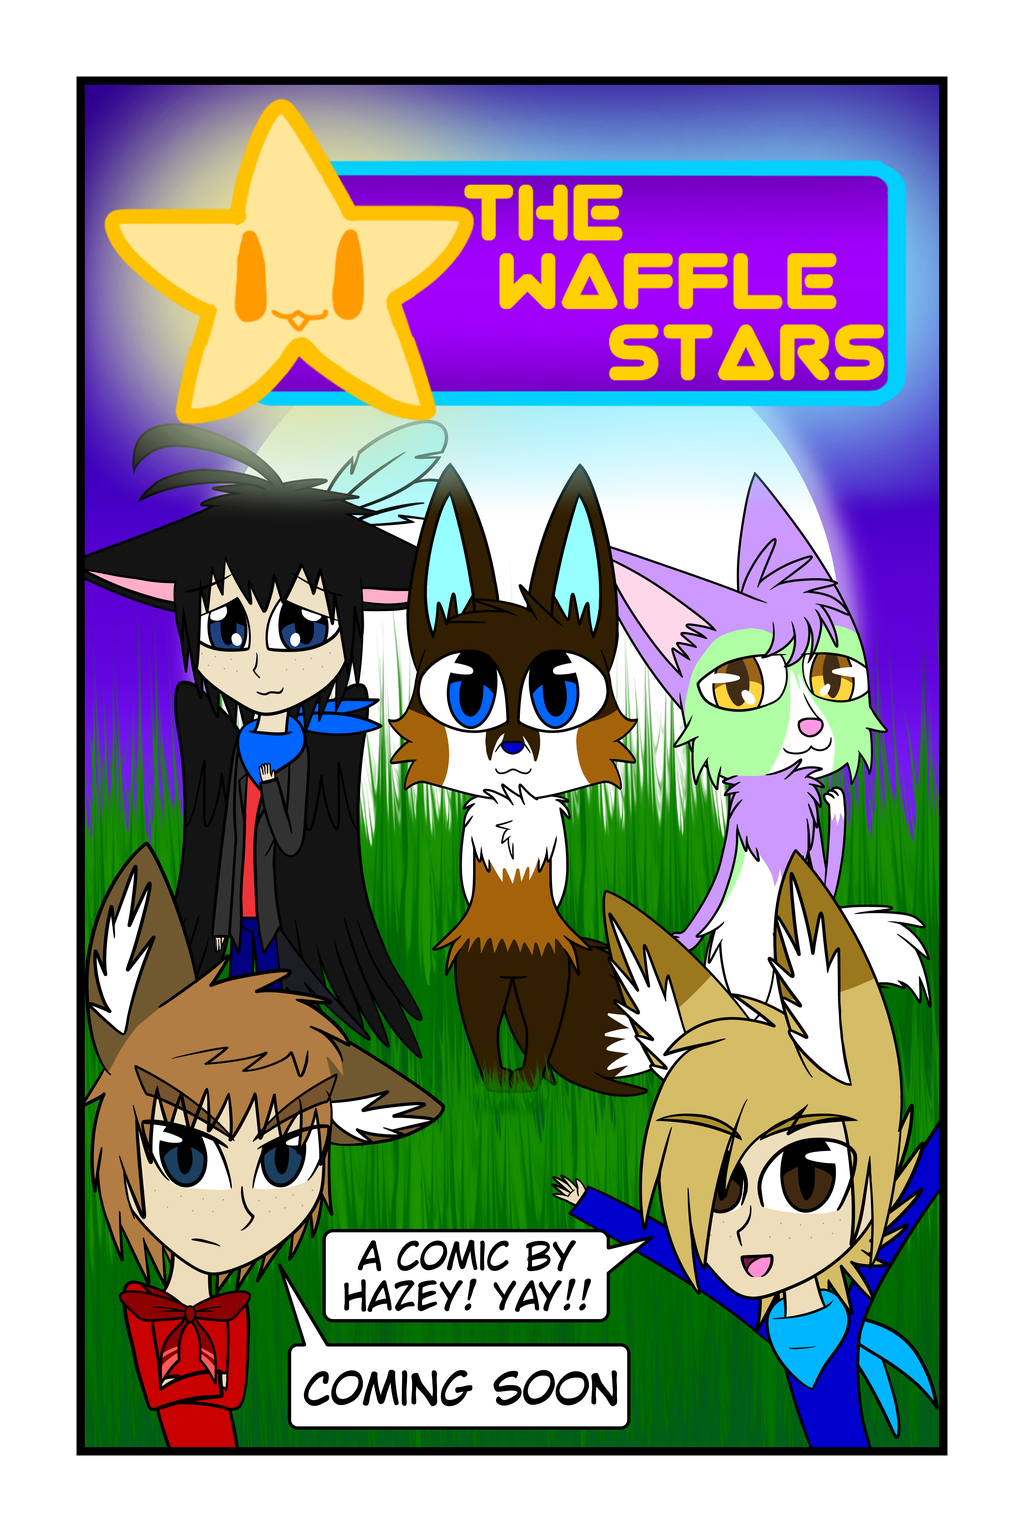 Coming Soon: The Waffle Stars